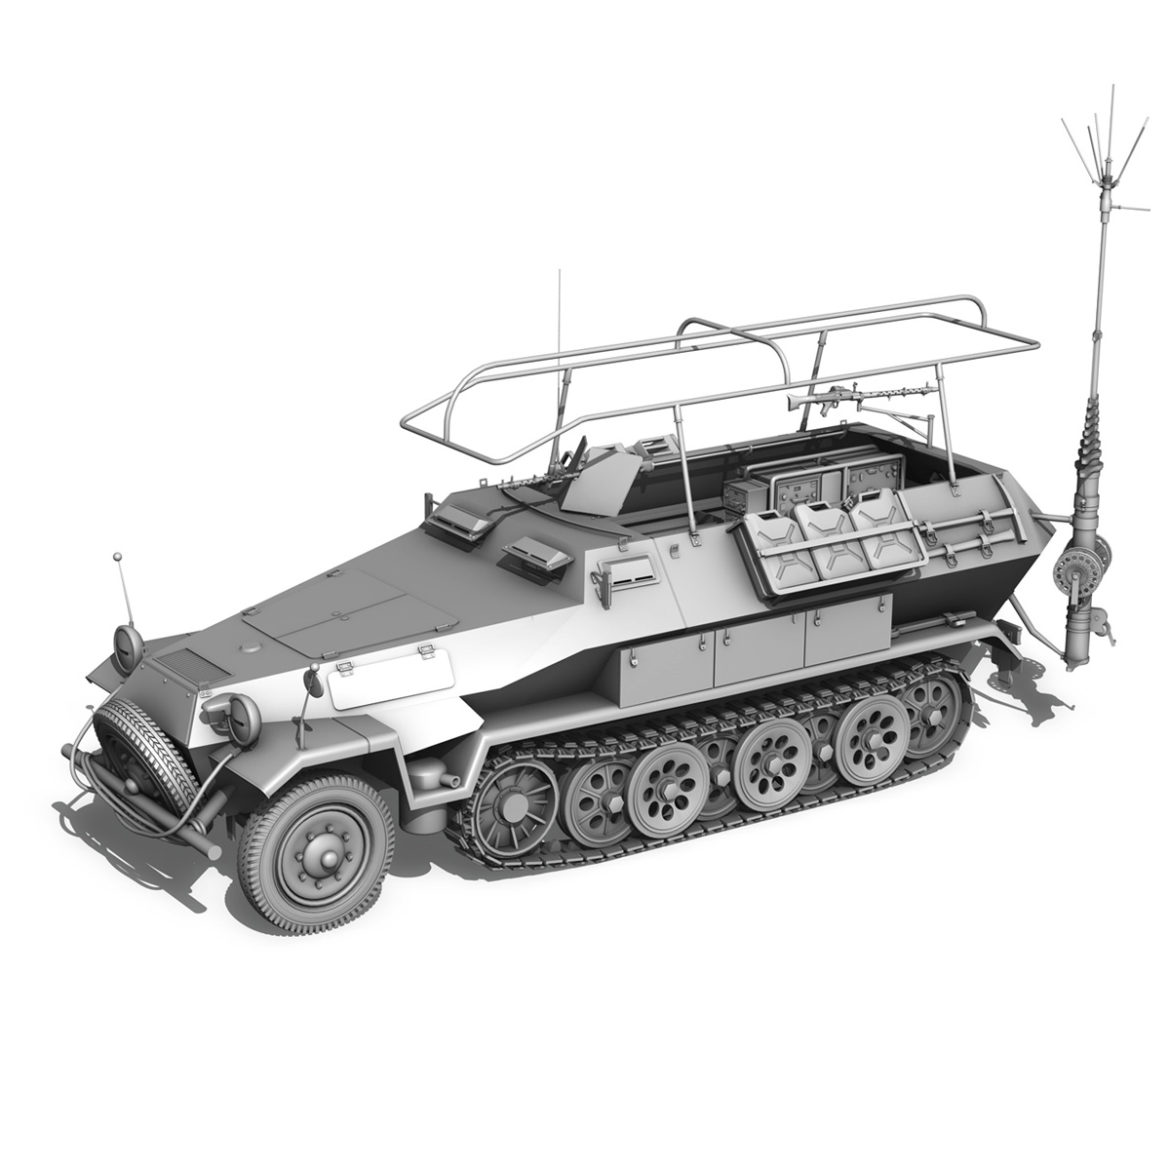 sdkfz 251 ausf.b – communications vehicle – 15pd 3d model 3ds fbx lwo lw lws obj c4d 305996